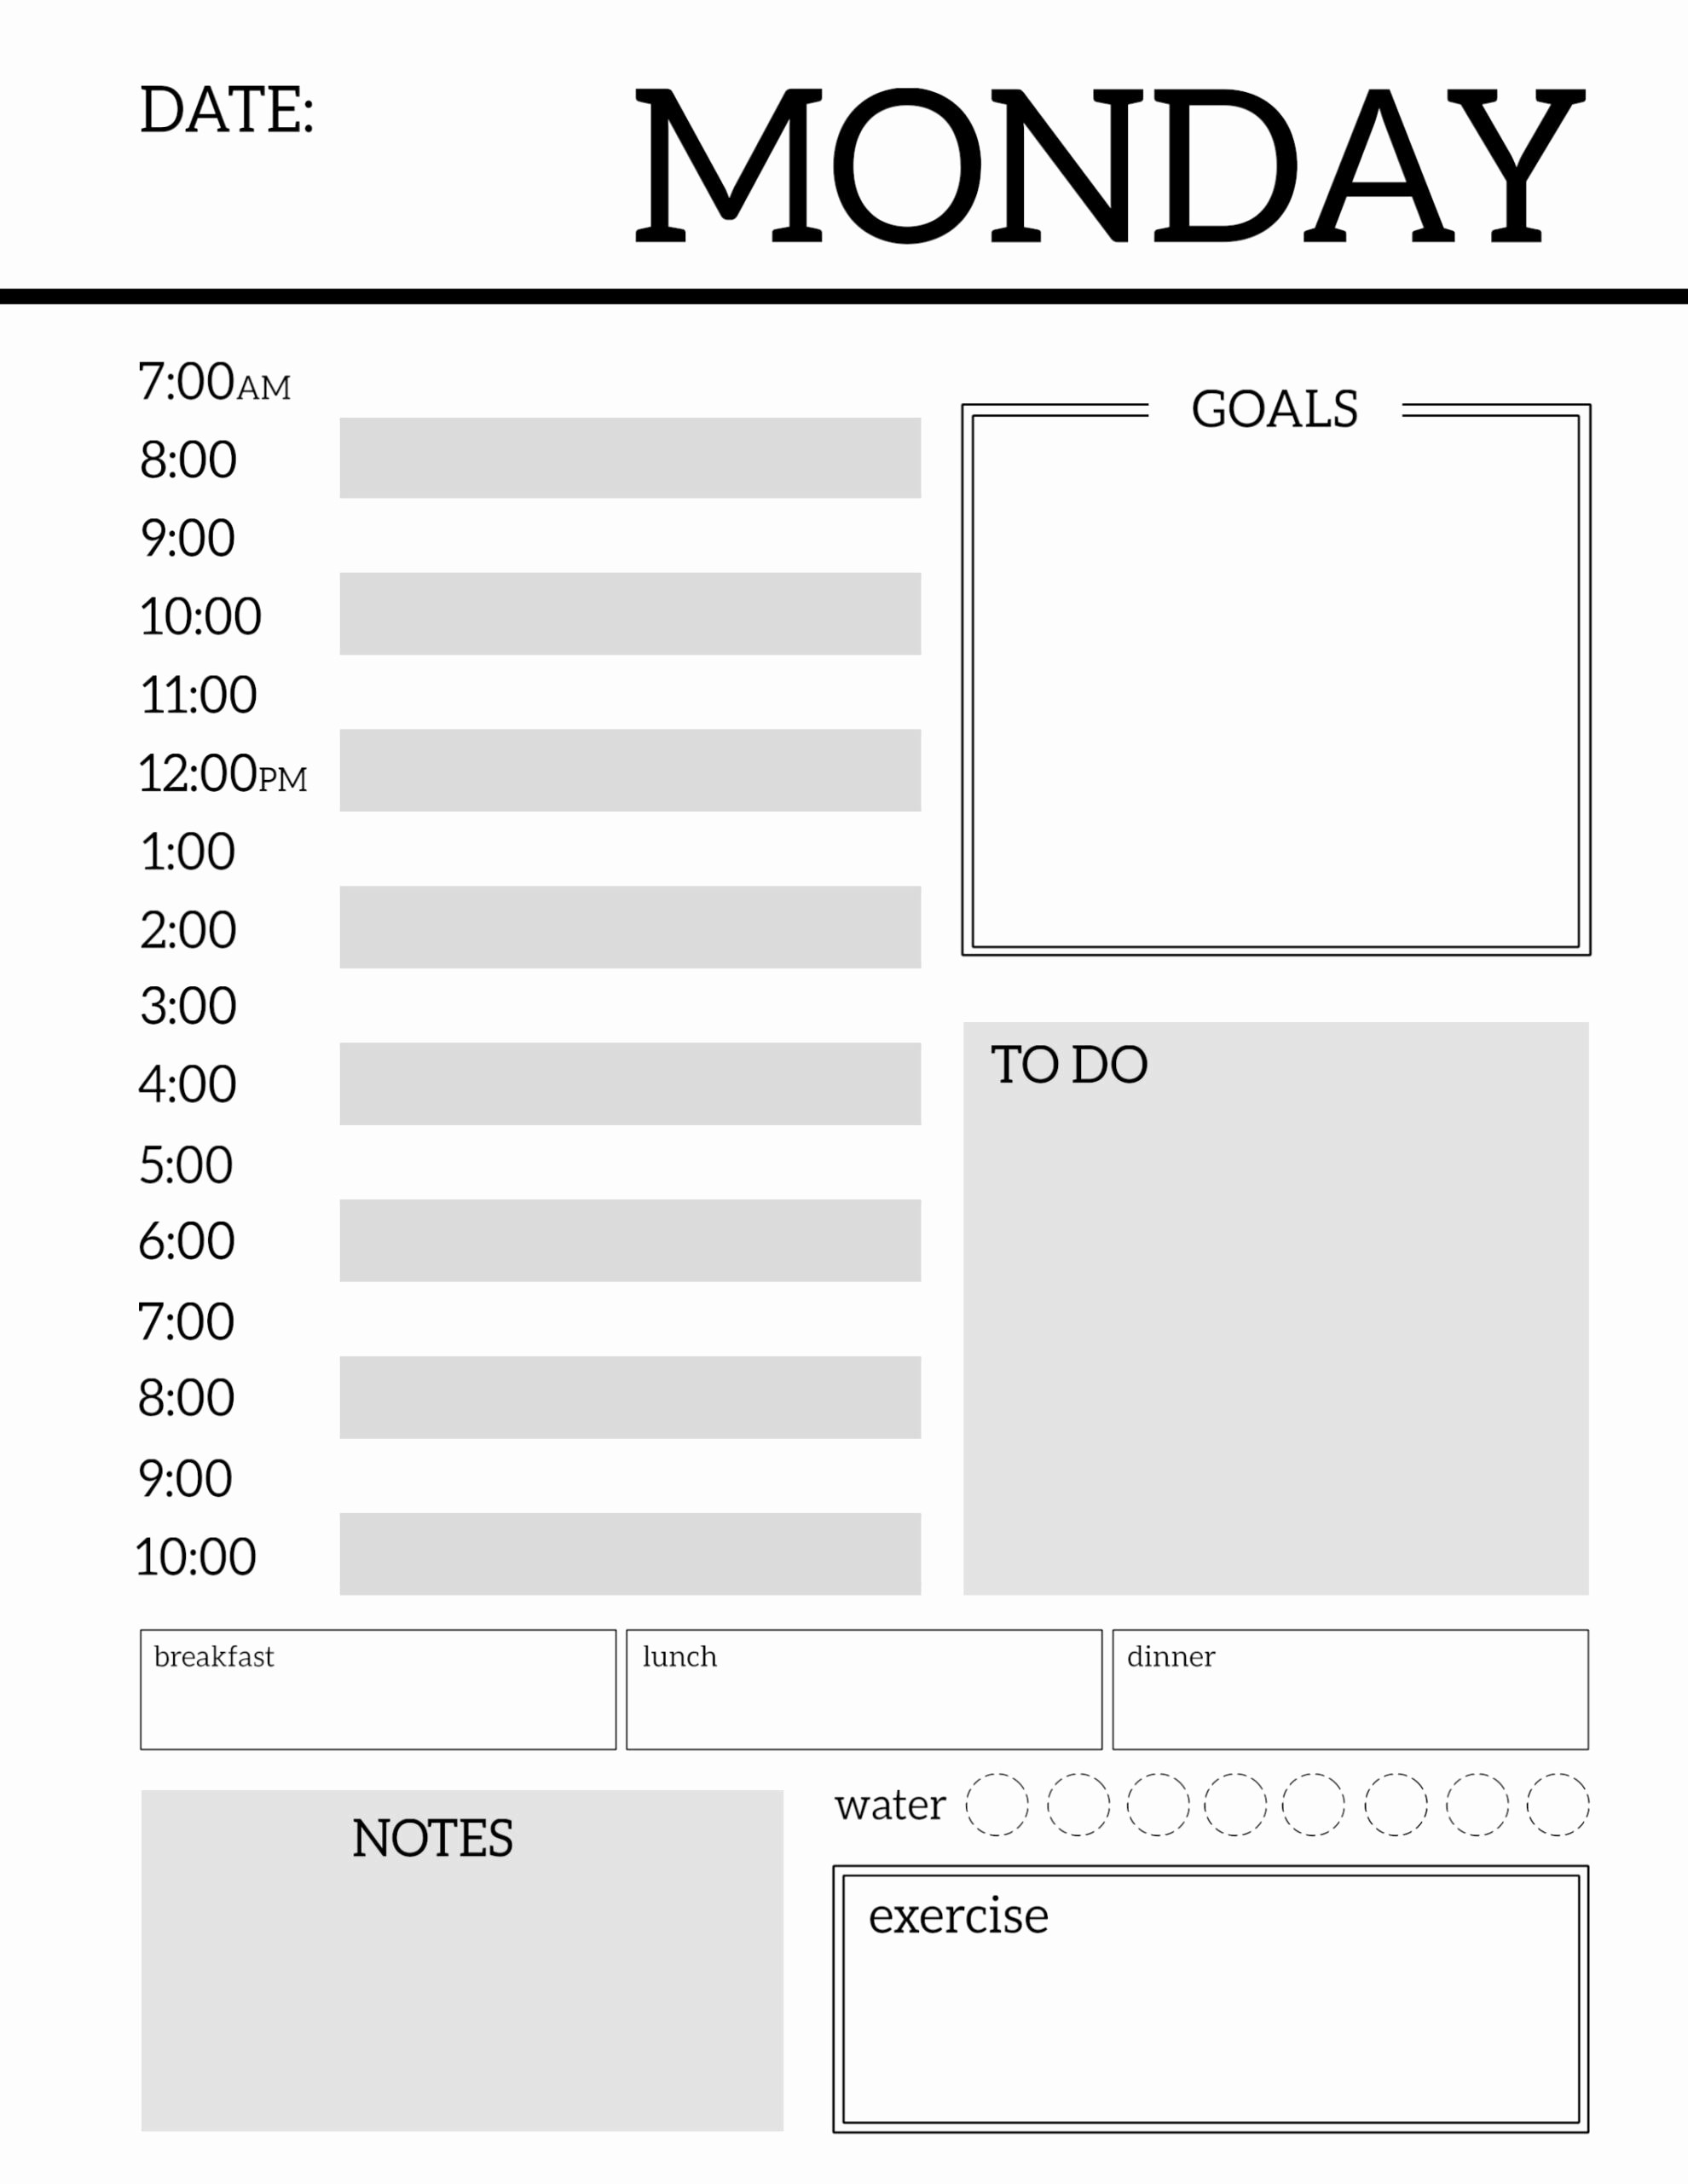 Free Daily Planner Printables Luxury Daily Planner Printable Template Sheets Paper Trail Design